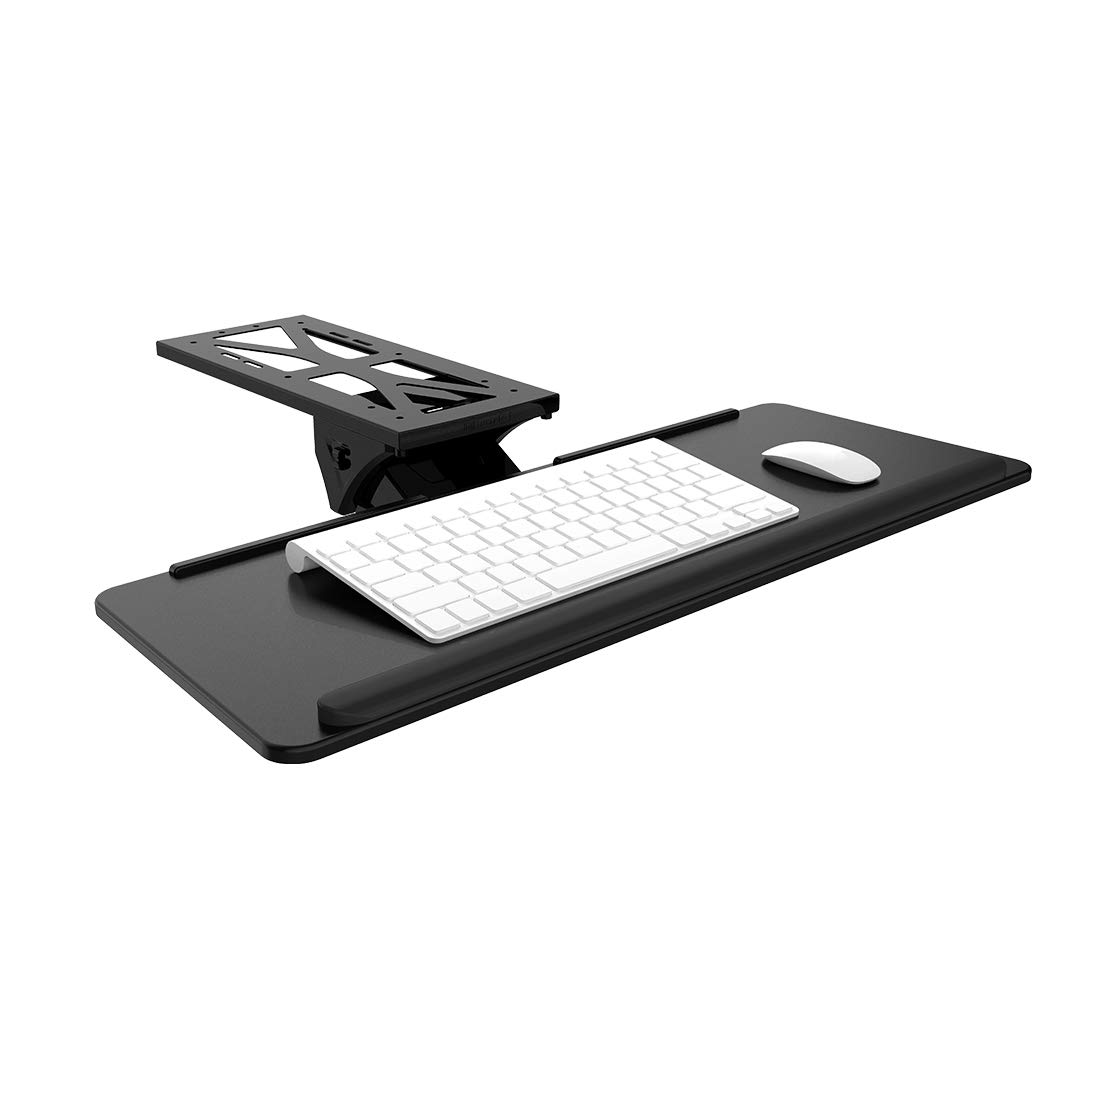 FlexiSpot Adjustable Computer Keyboard & Mouse Platform Tray Ergonnomic Under Table Desk Mount Drawer Shelf by Loctek